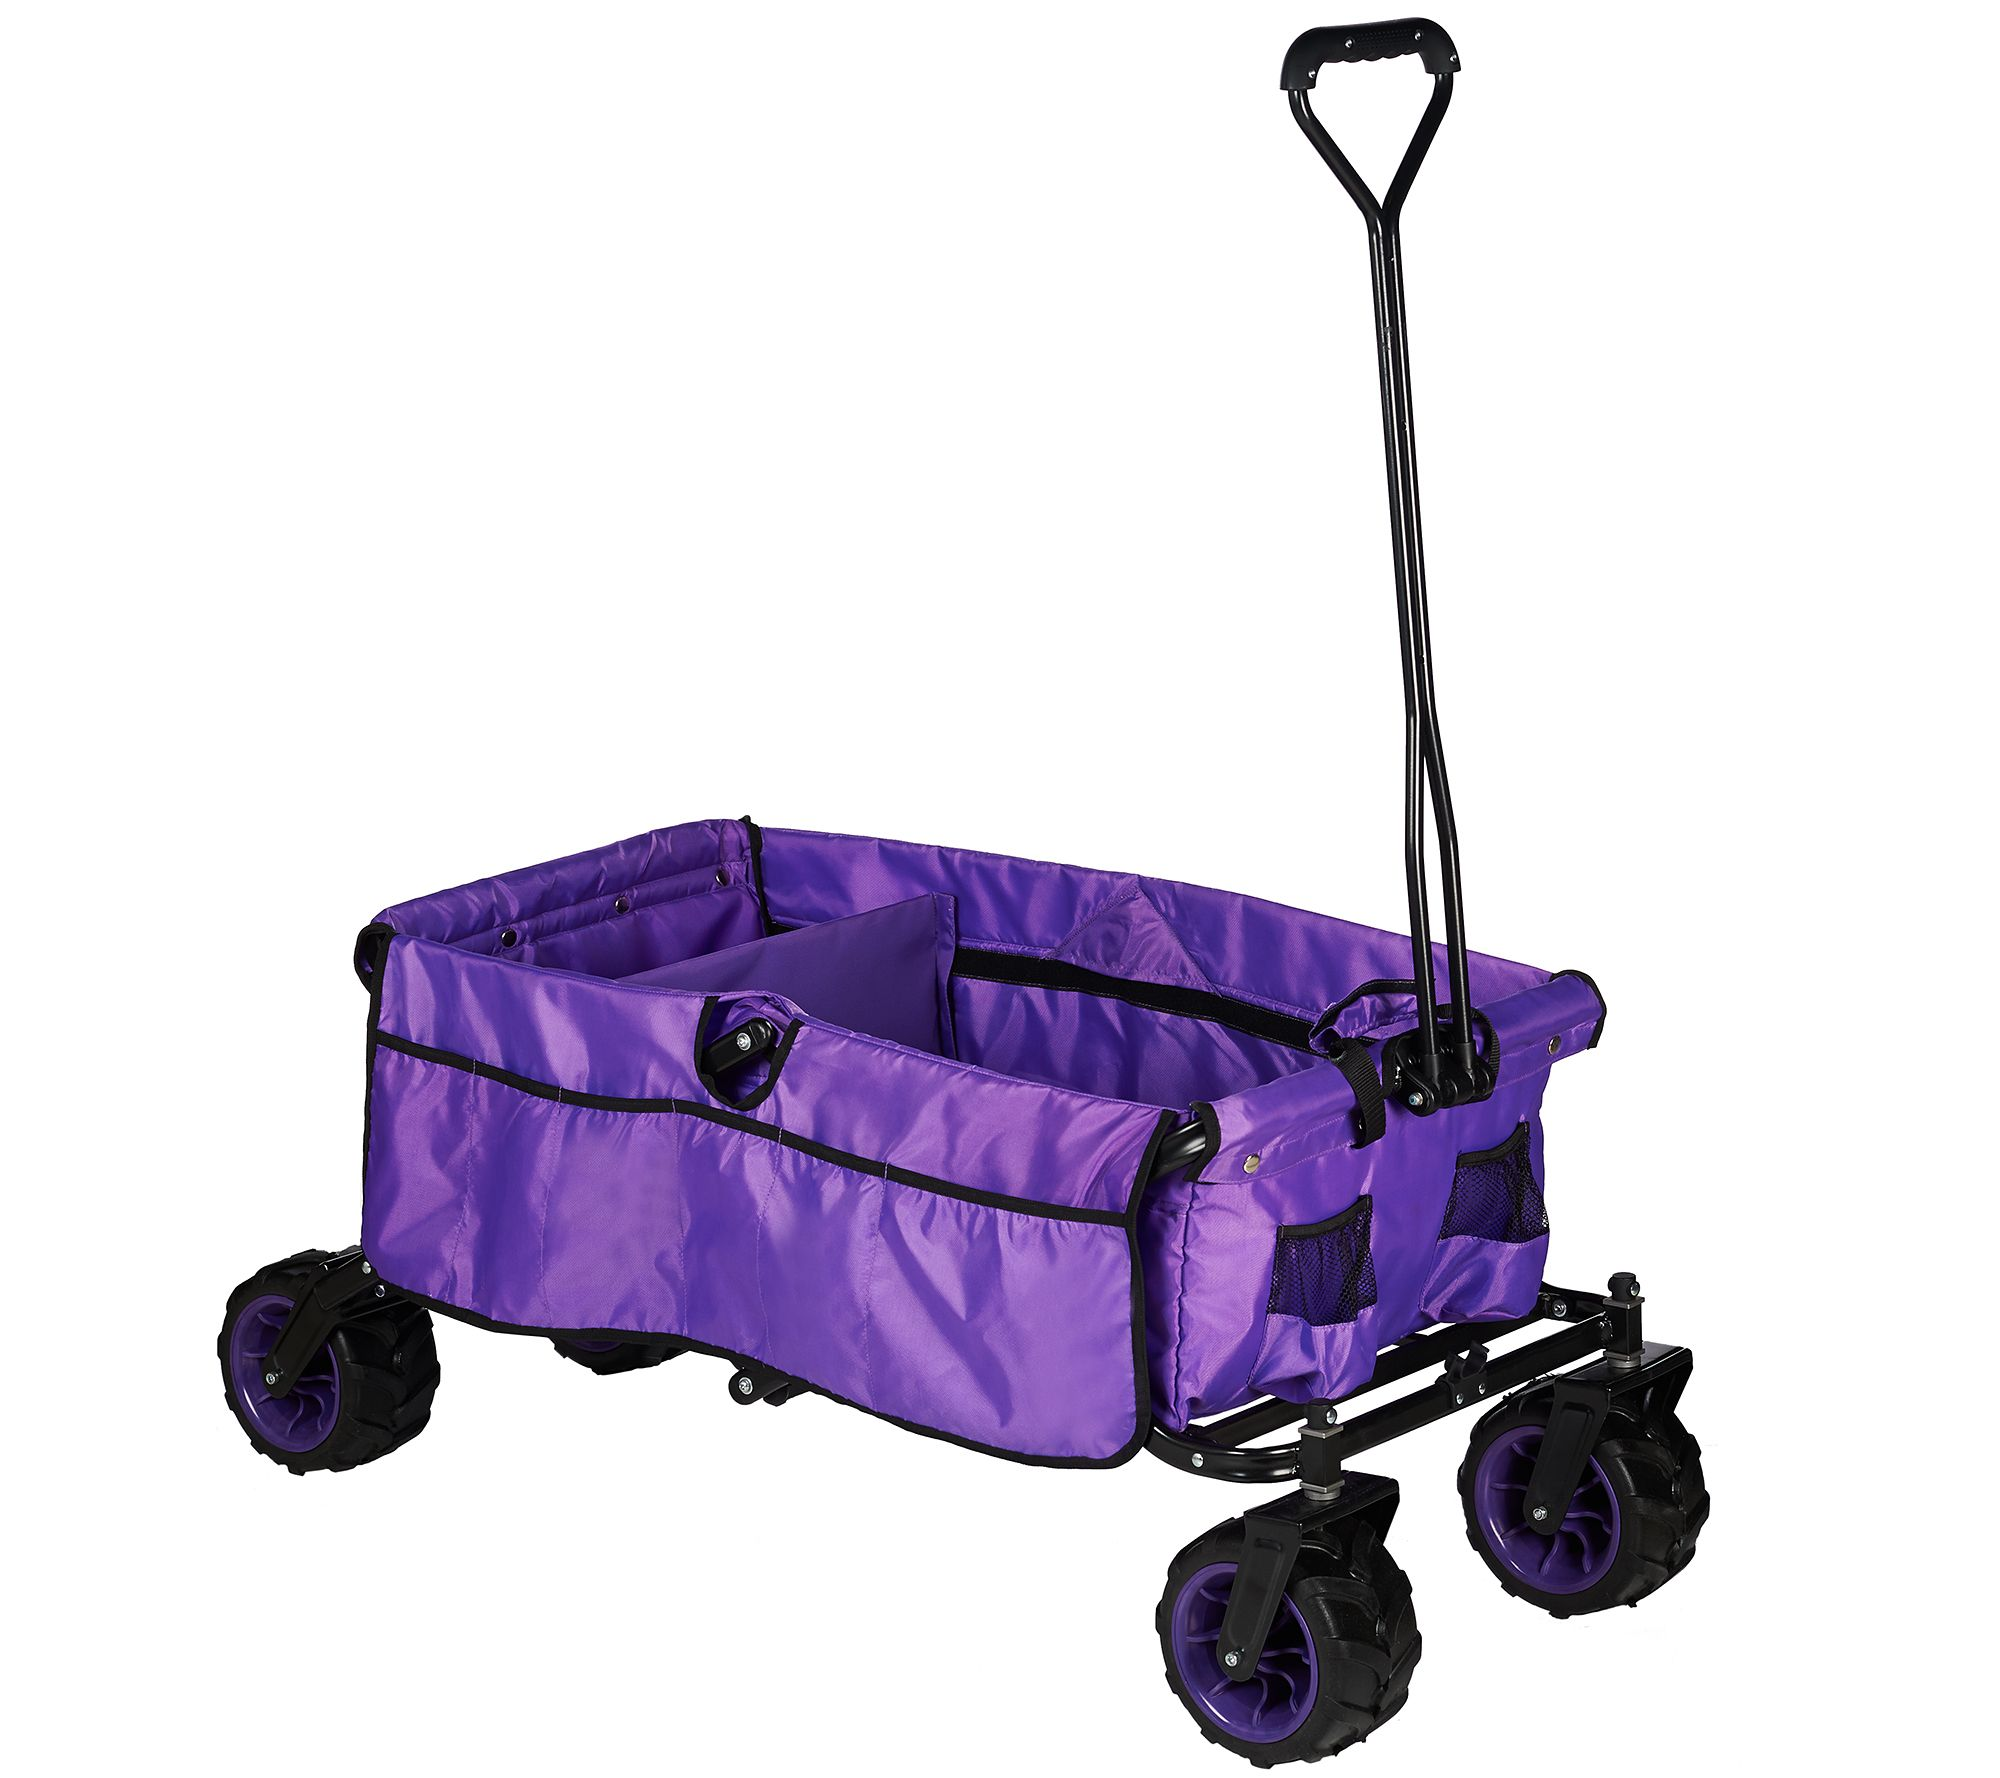 Creative Outdoor All-Terrain Folding Wagon with Divider - Page 1 — QVC.com d04a494f8